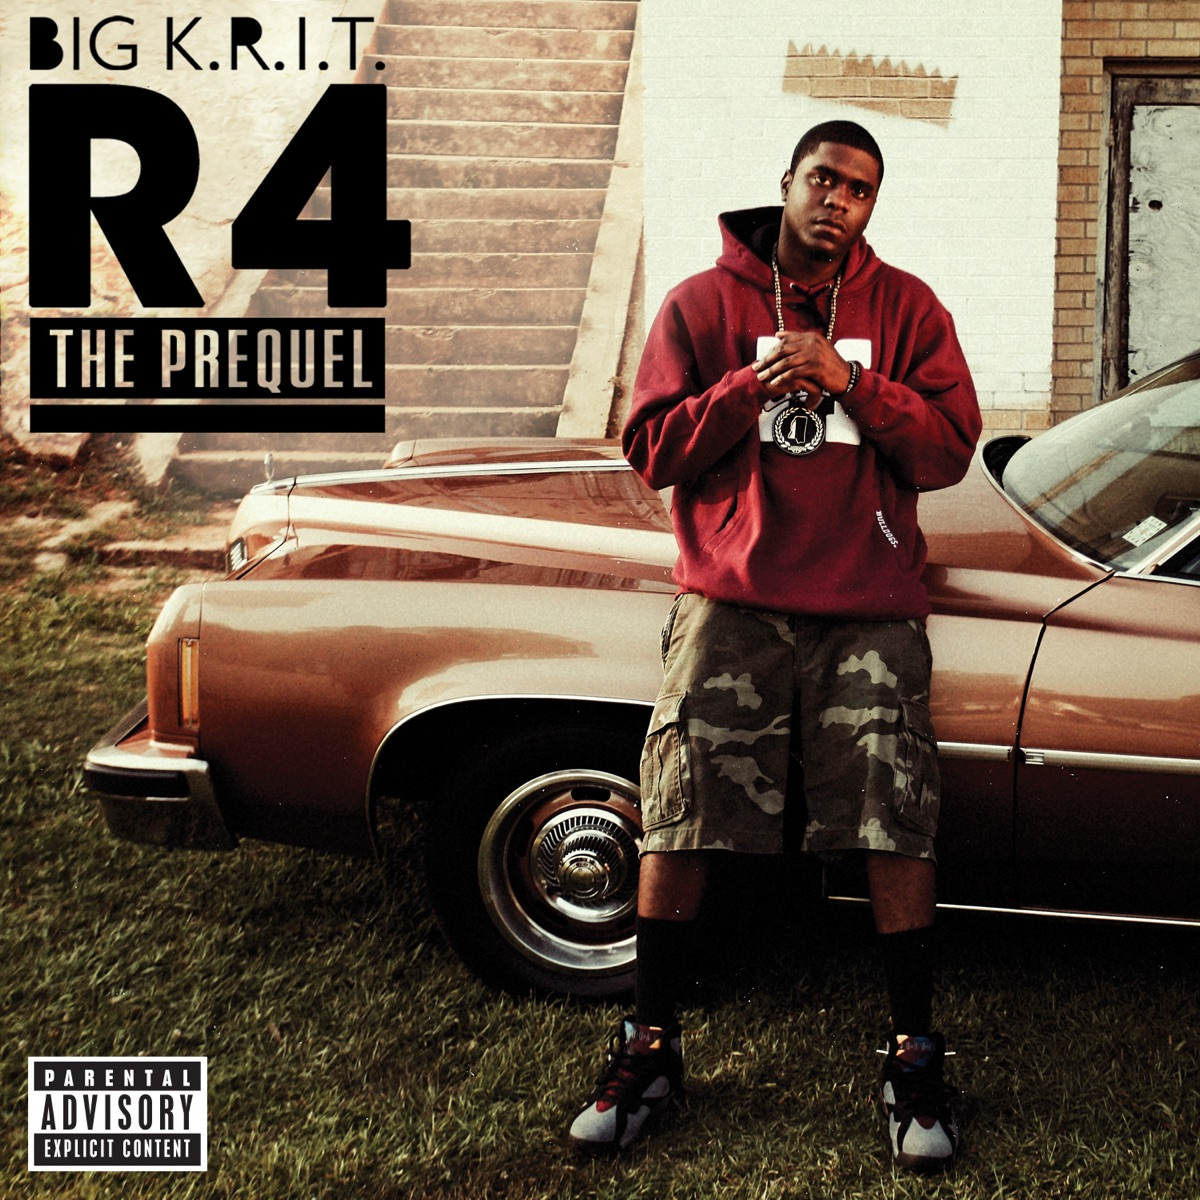 R4 the Prequel - EP Big KRIT CD cover